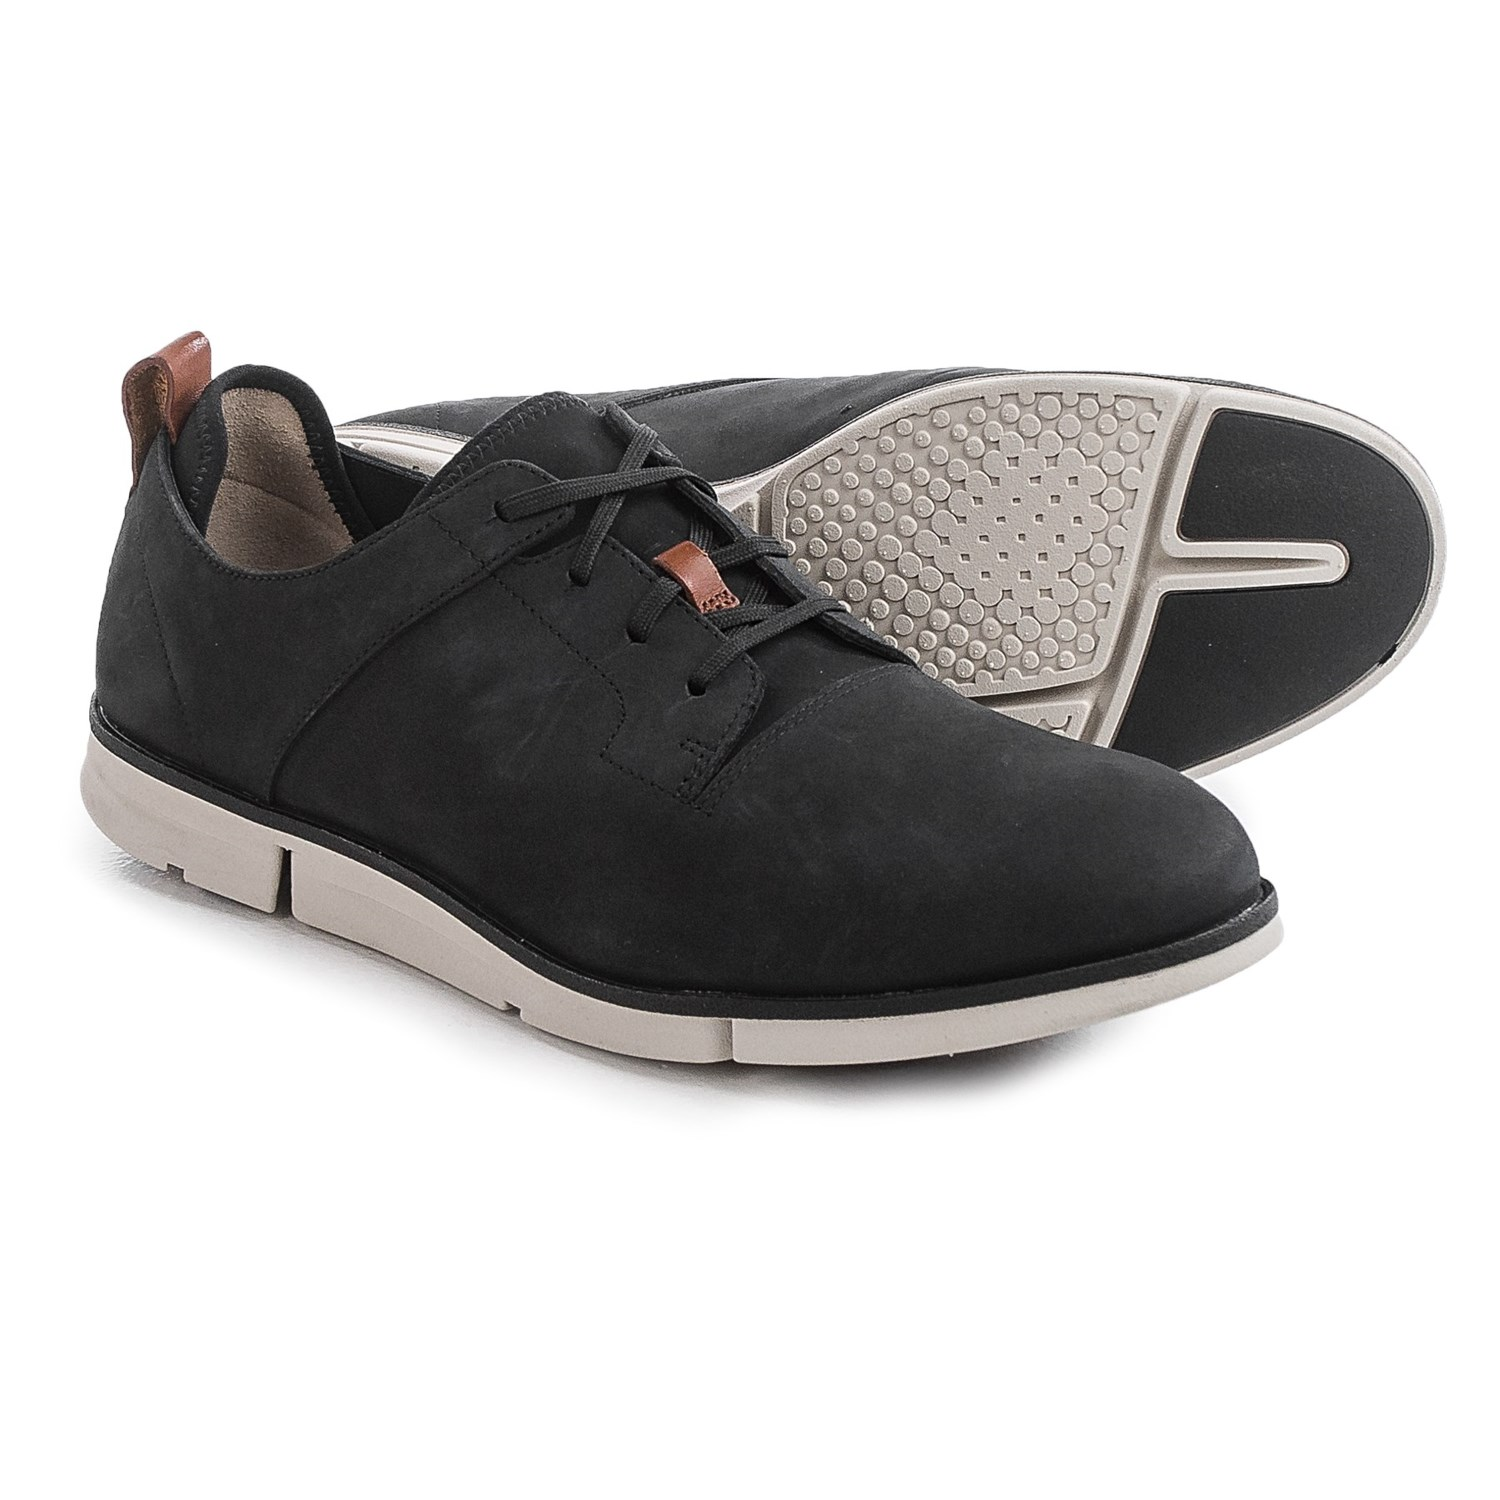 Buy Men's shoes online from Clarks. Shop for latest designer men's shoes - formal shoes, casual shoes, smart casual shoes available in stylish designs and comfortable fit at best prices. Shop Clarks Mens Shoes now.